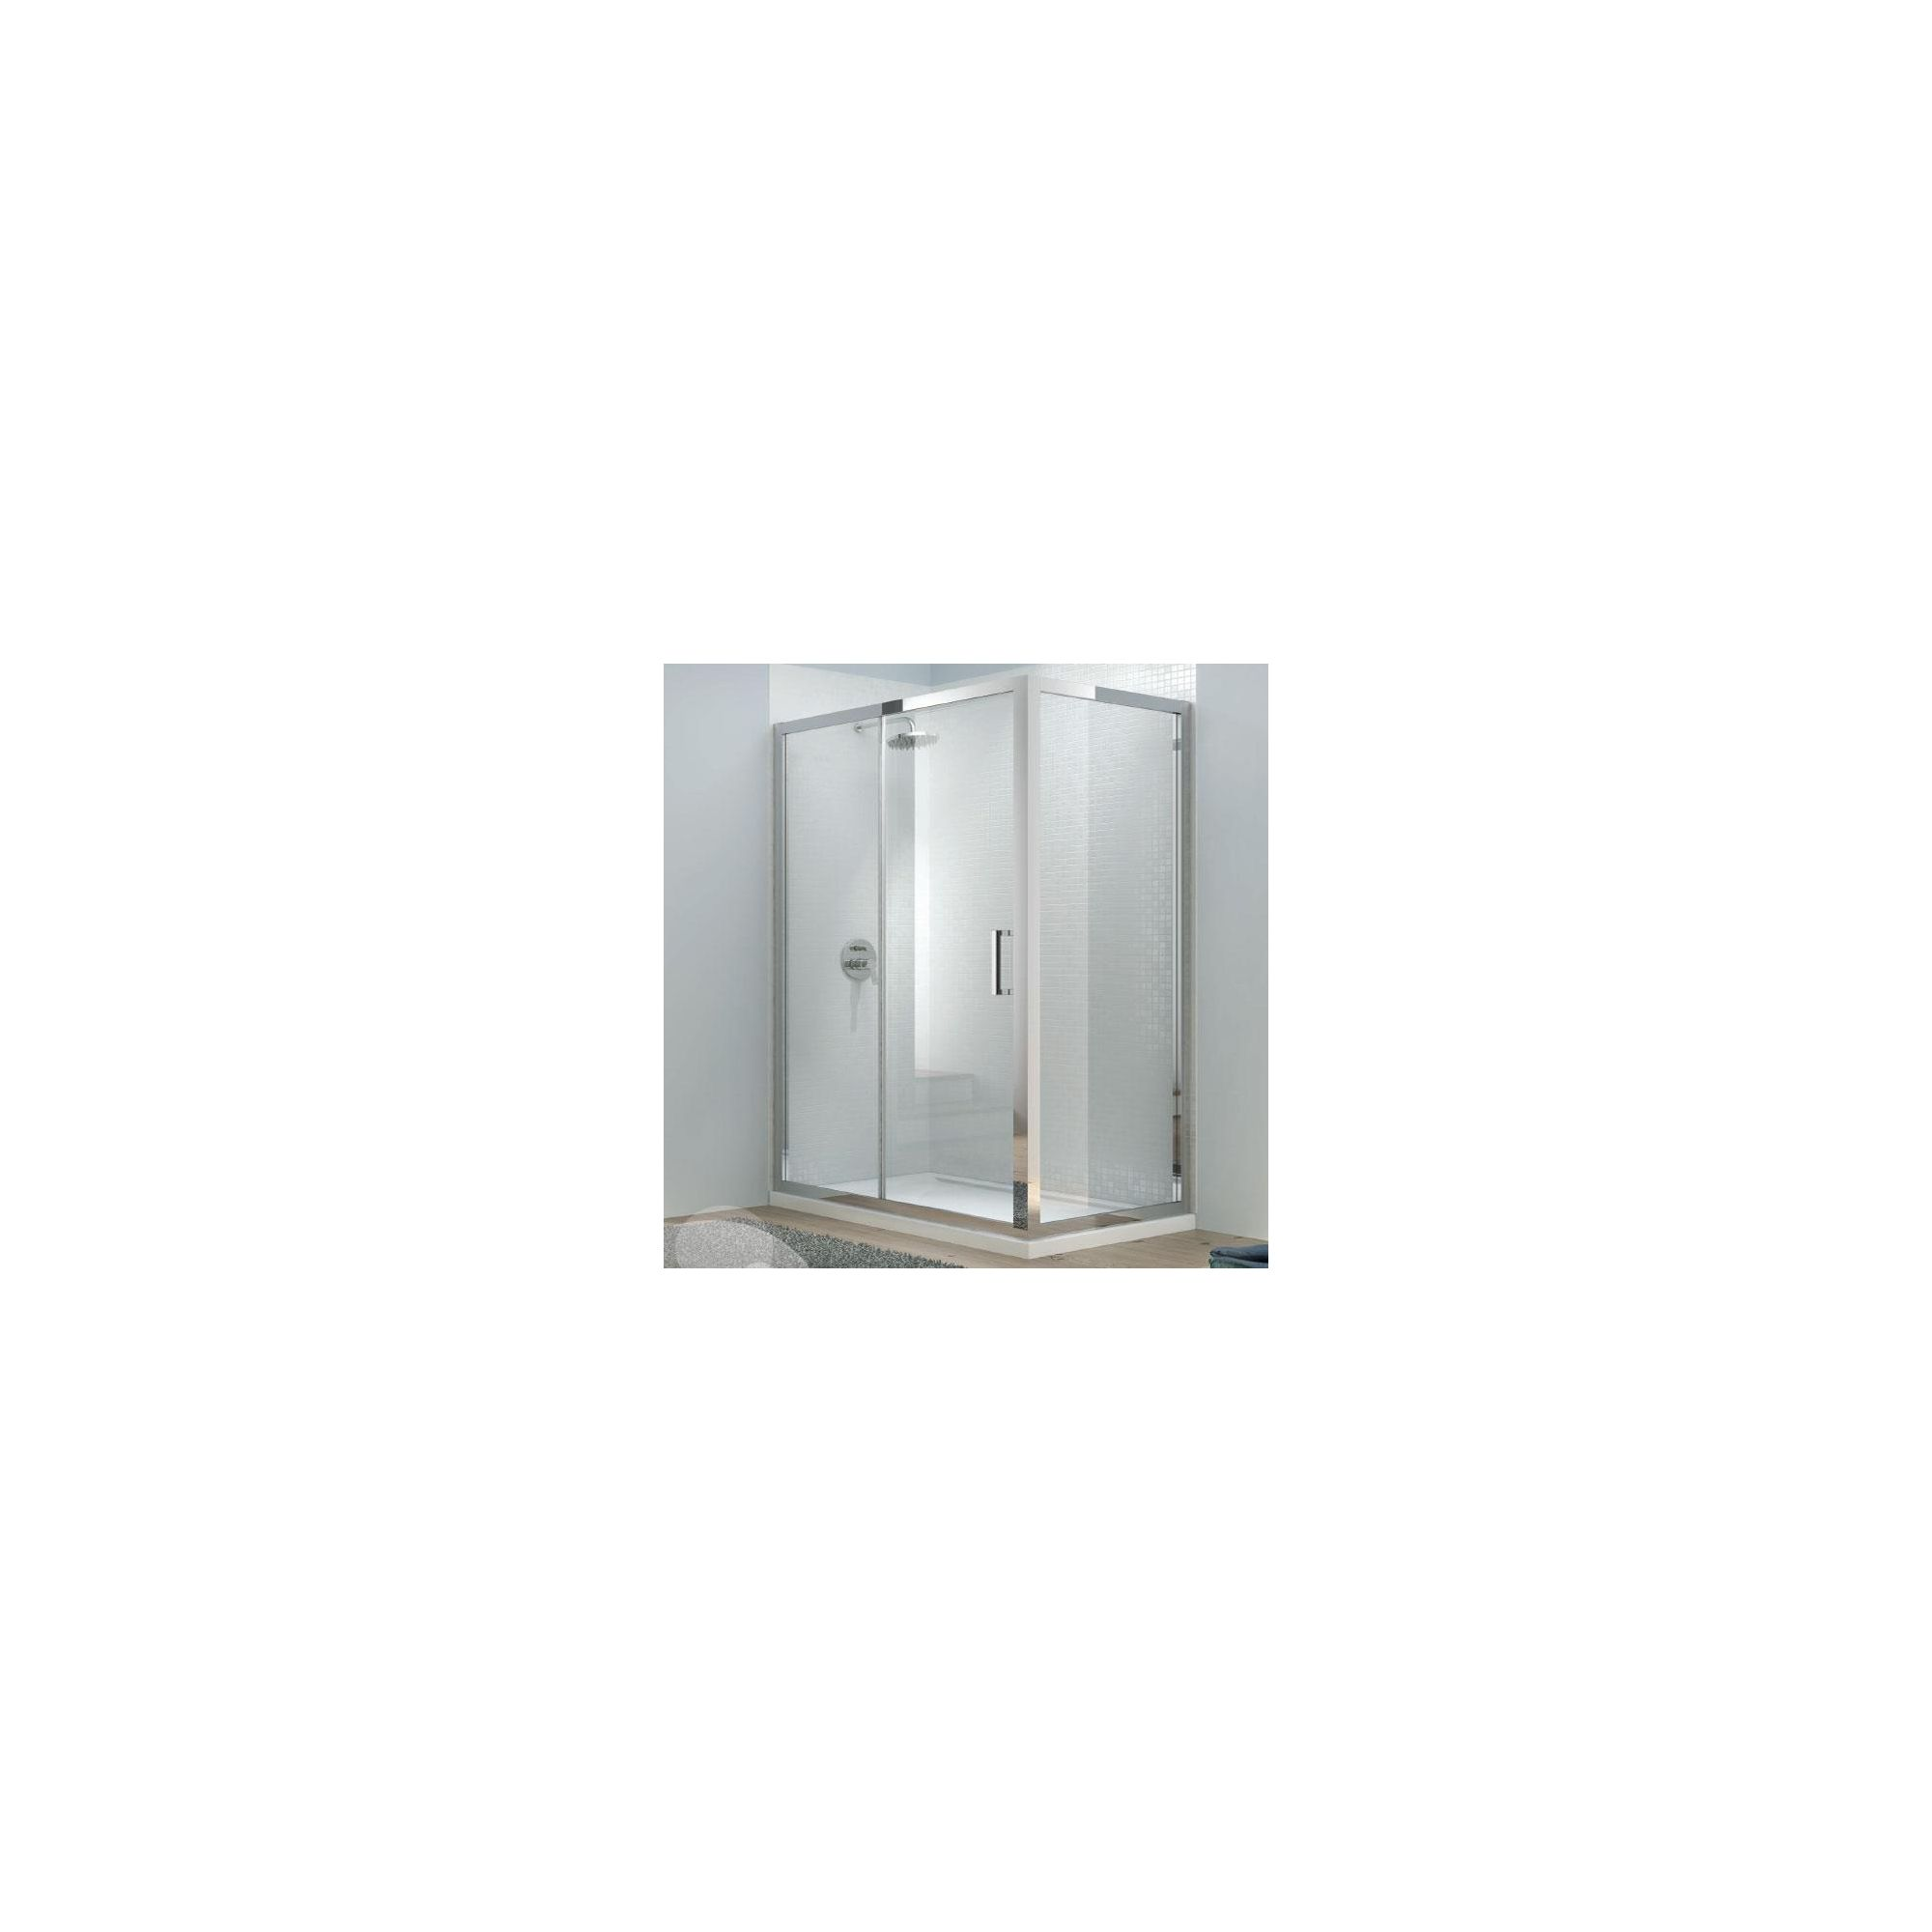 Merlyn Vivid Eight Sliding Door Shower Enclosure, 1400mm x 900mm, Low Profile Tray, 8mm Glass at Tesco Direct